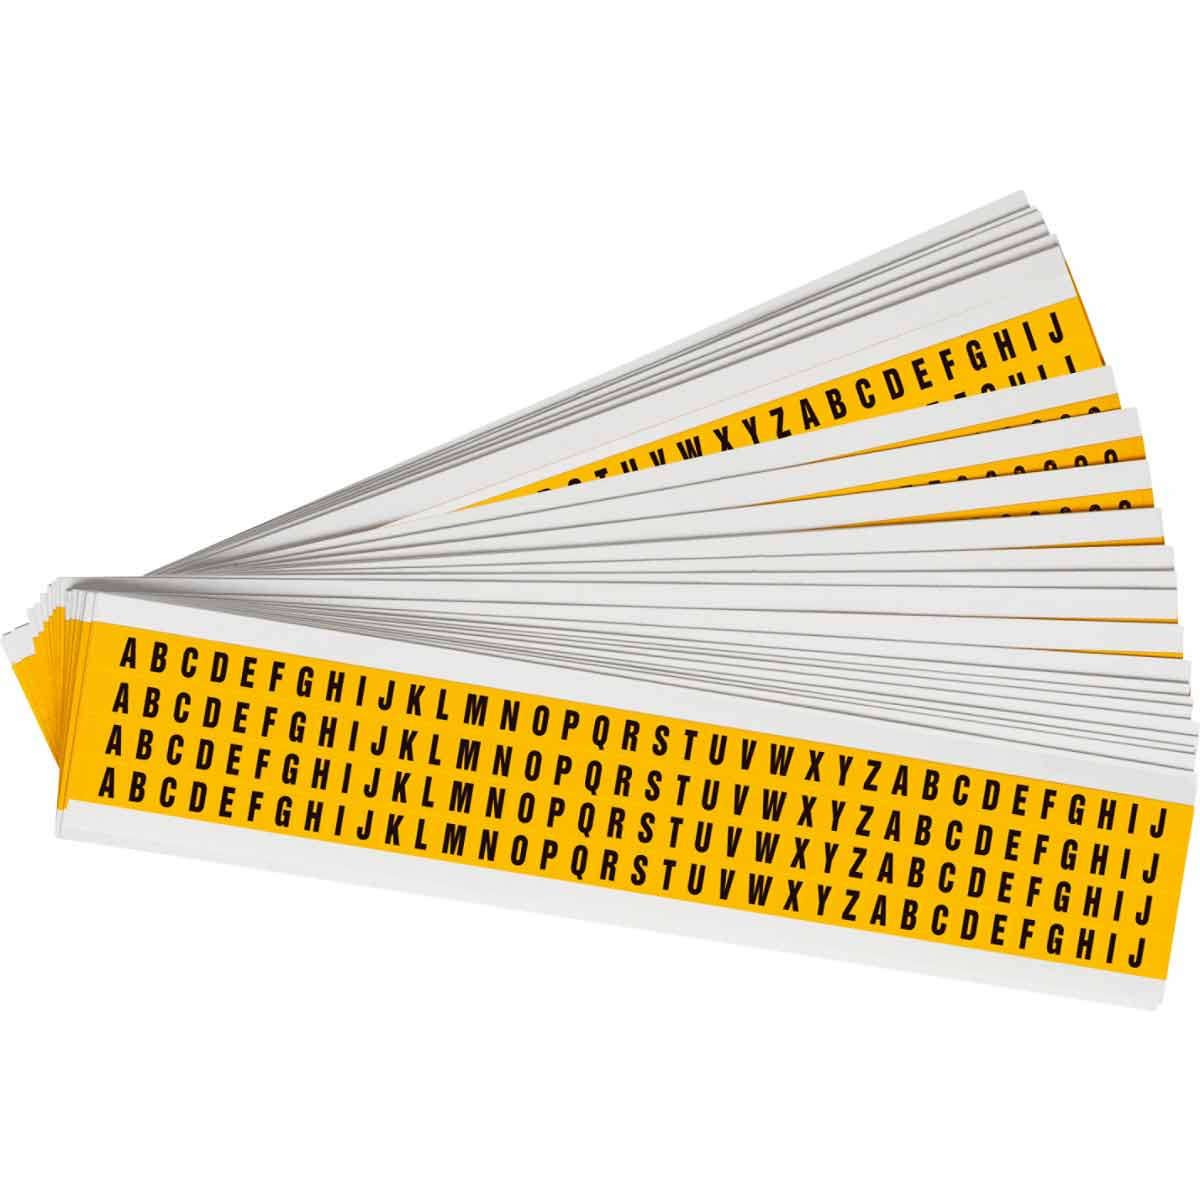 Brady® 94738 1500 Consecutive Non-Illuminated Non-Reflective Standard Letter Label Kit, 1/4 in H Black A to Z Character, Yellow Background, B-946 Vinyl